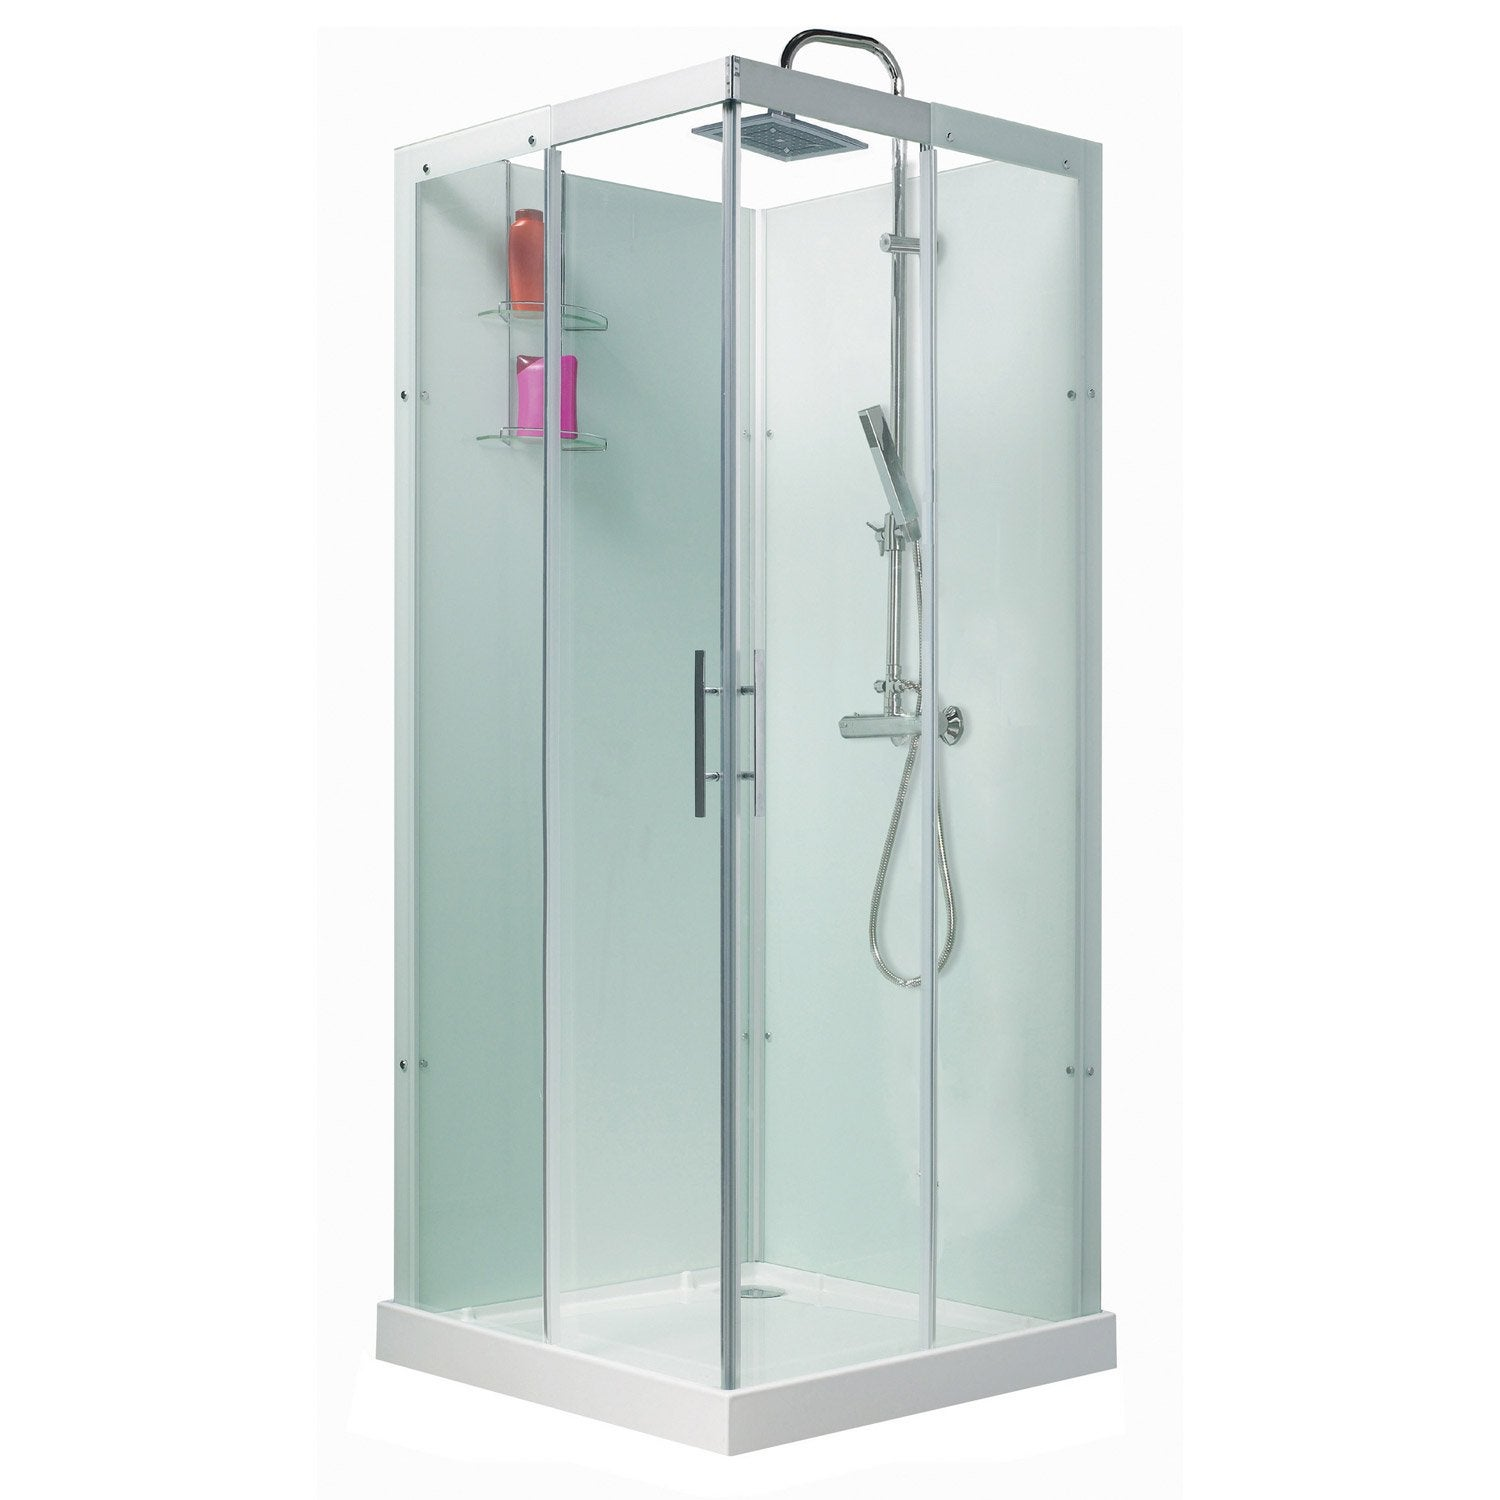 Cabine de douche carr 80x80 cm thalaglass 2 thermo for Douche chez leroy merlin